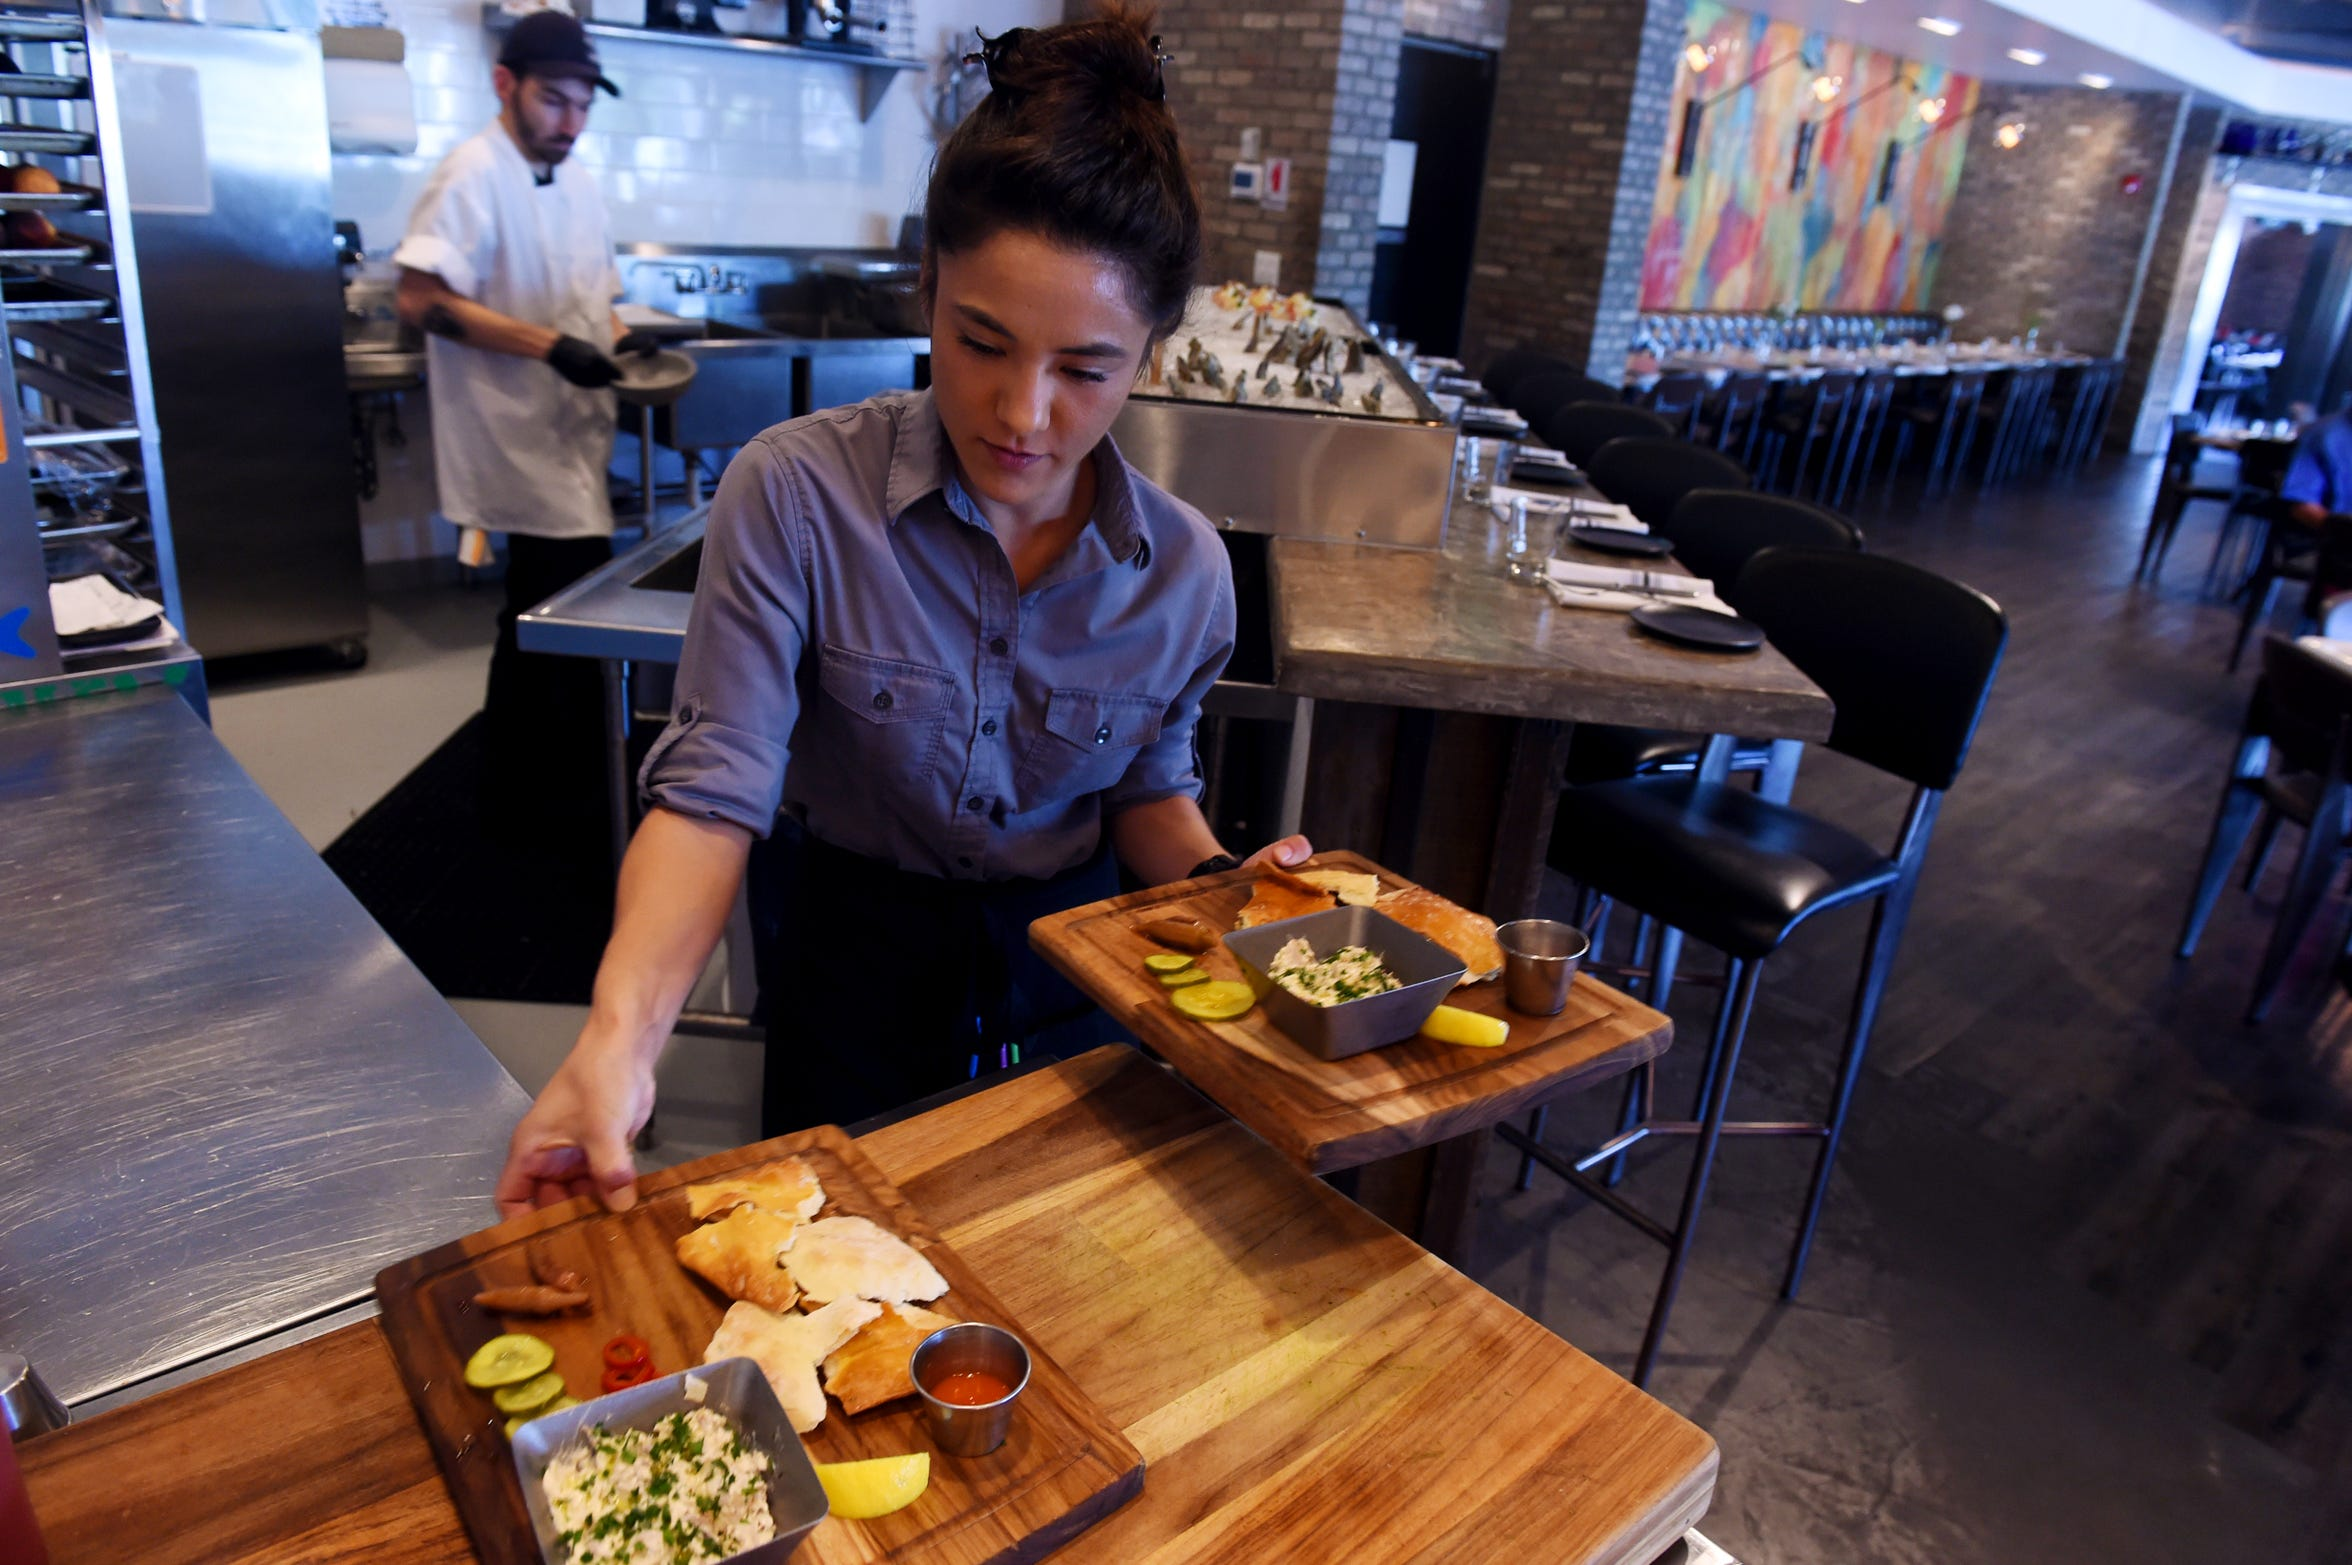 Server Sarah Ford prepares to serve up two boards of smoked cobia dip at the start of the dinner rush at District Table & Bar in Port Salerno. The board consists of smoked cobia dip, pickles, fermented hot sauce, crackers, preserved lemon and herbs.